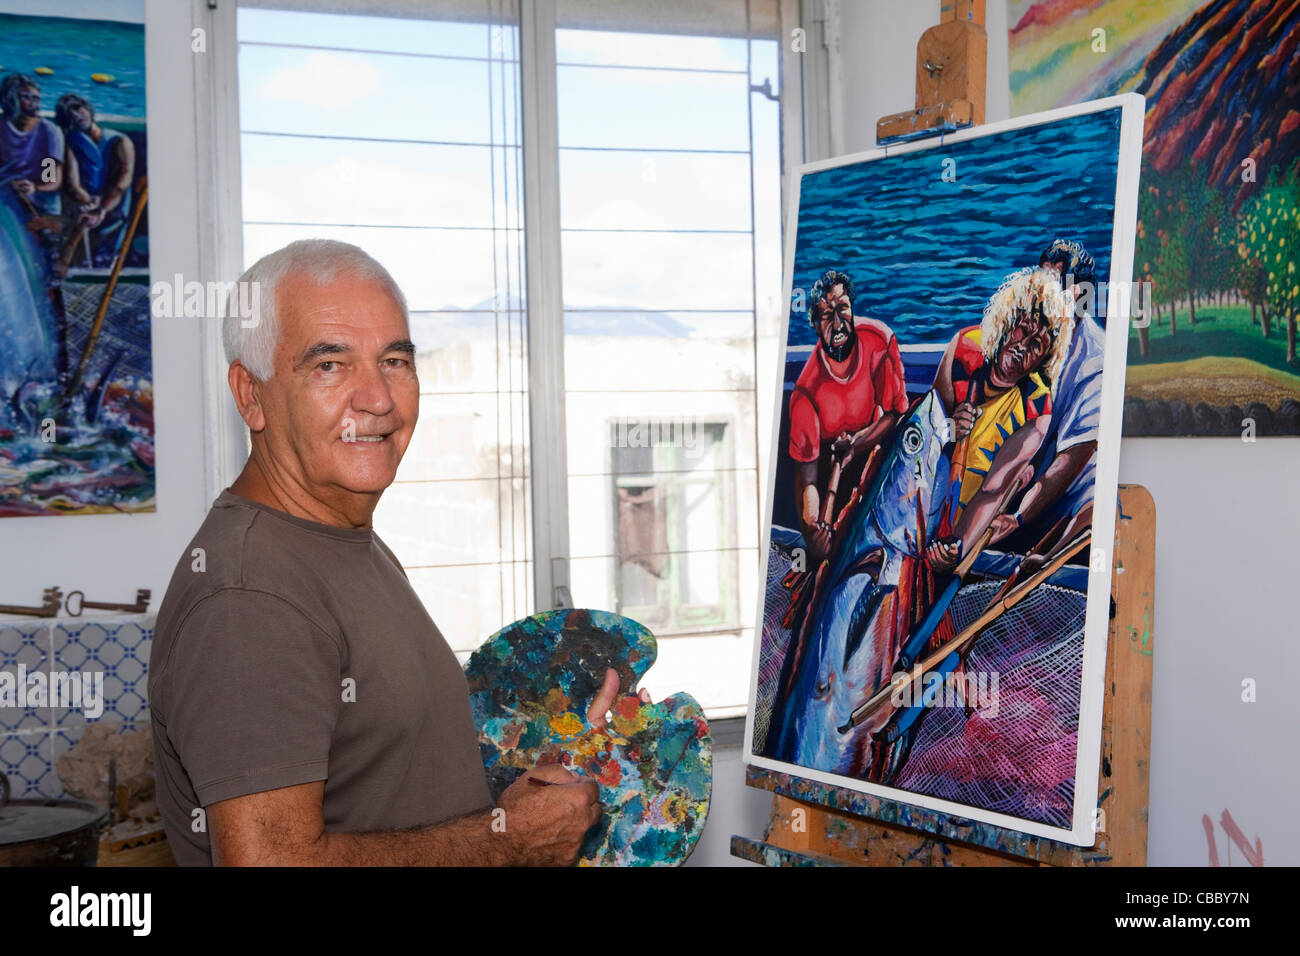 Older artist painting in studio - Stock Image